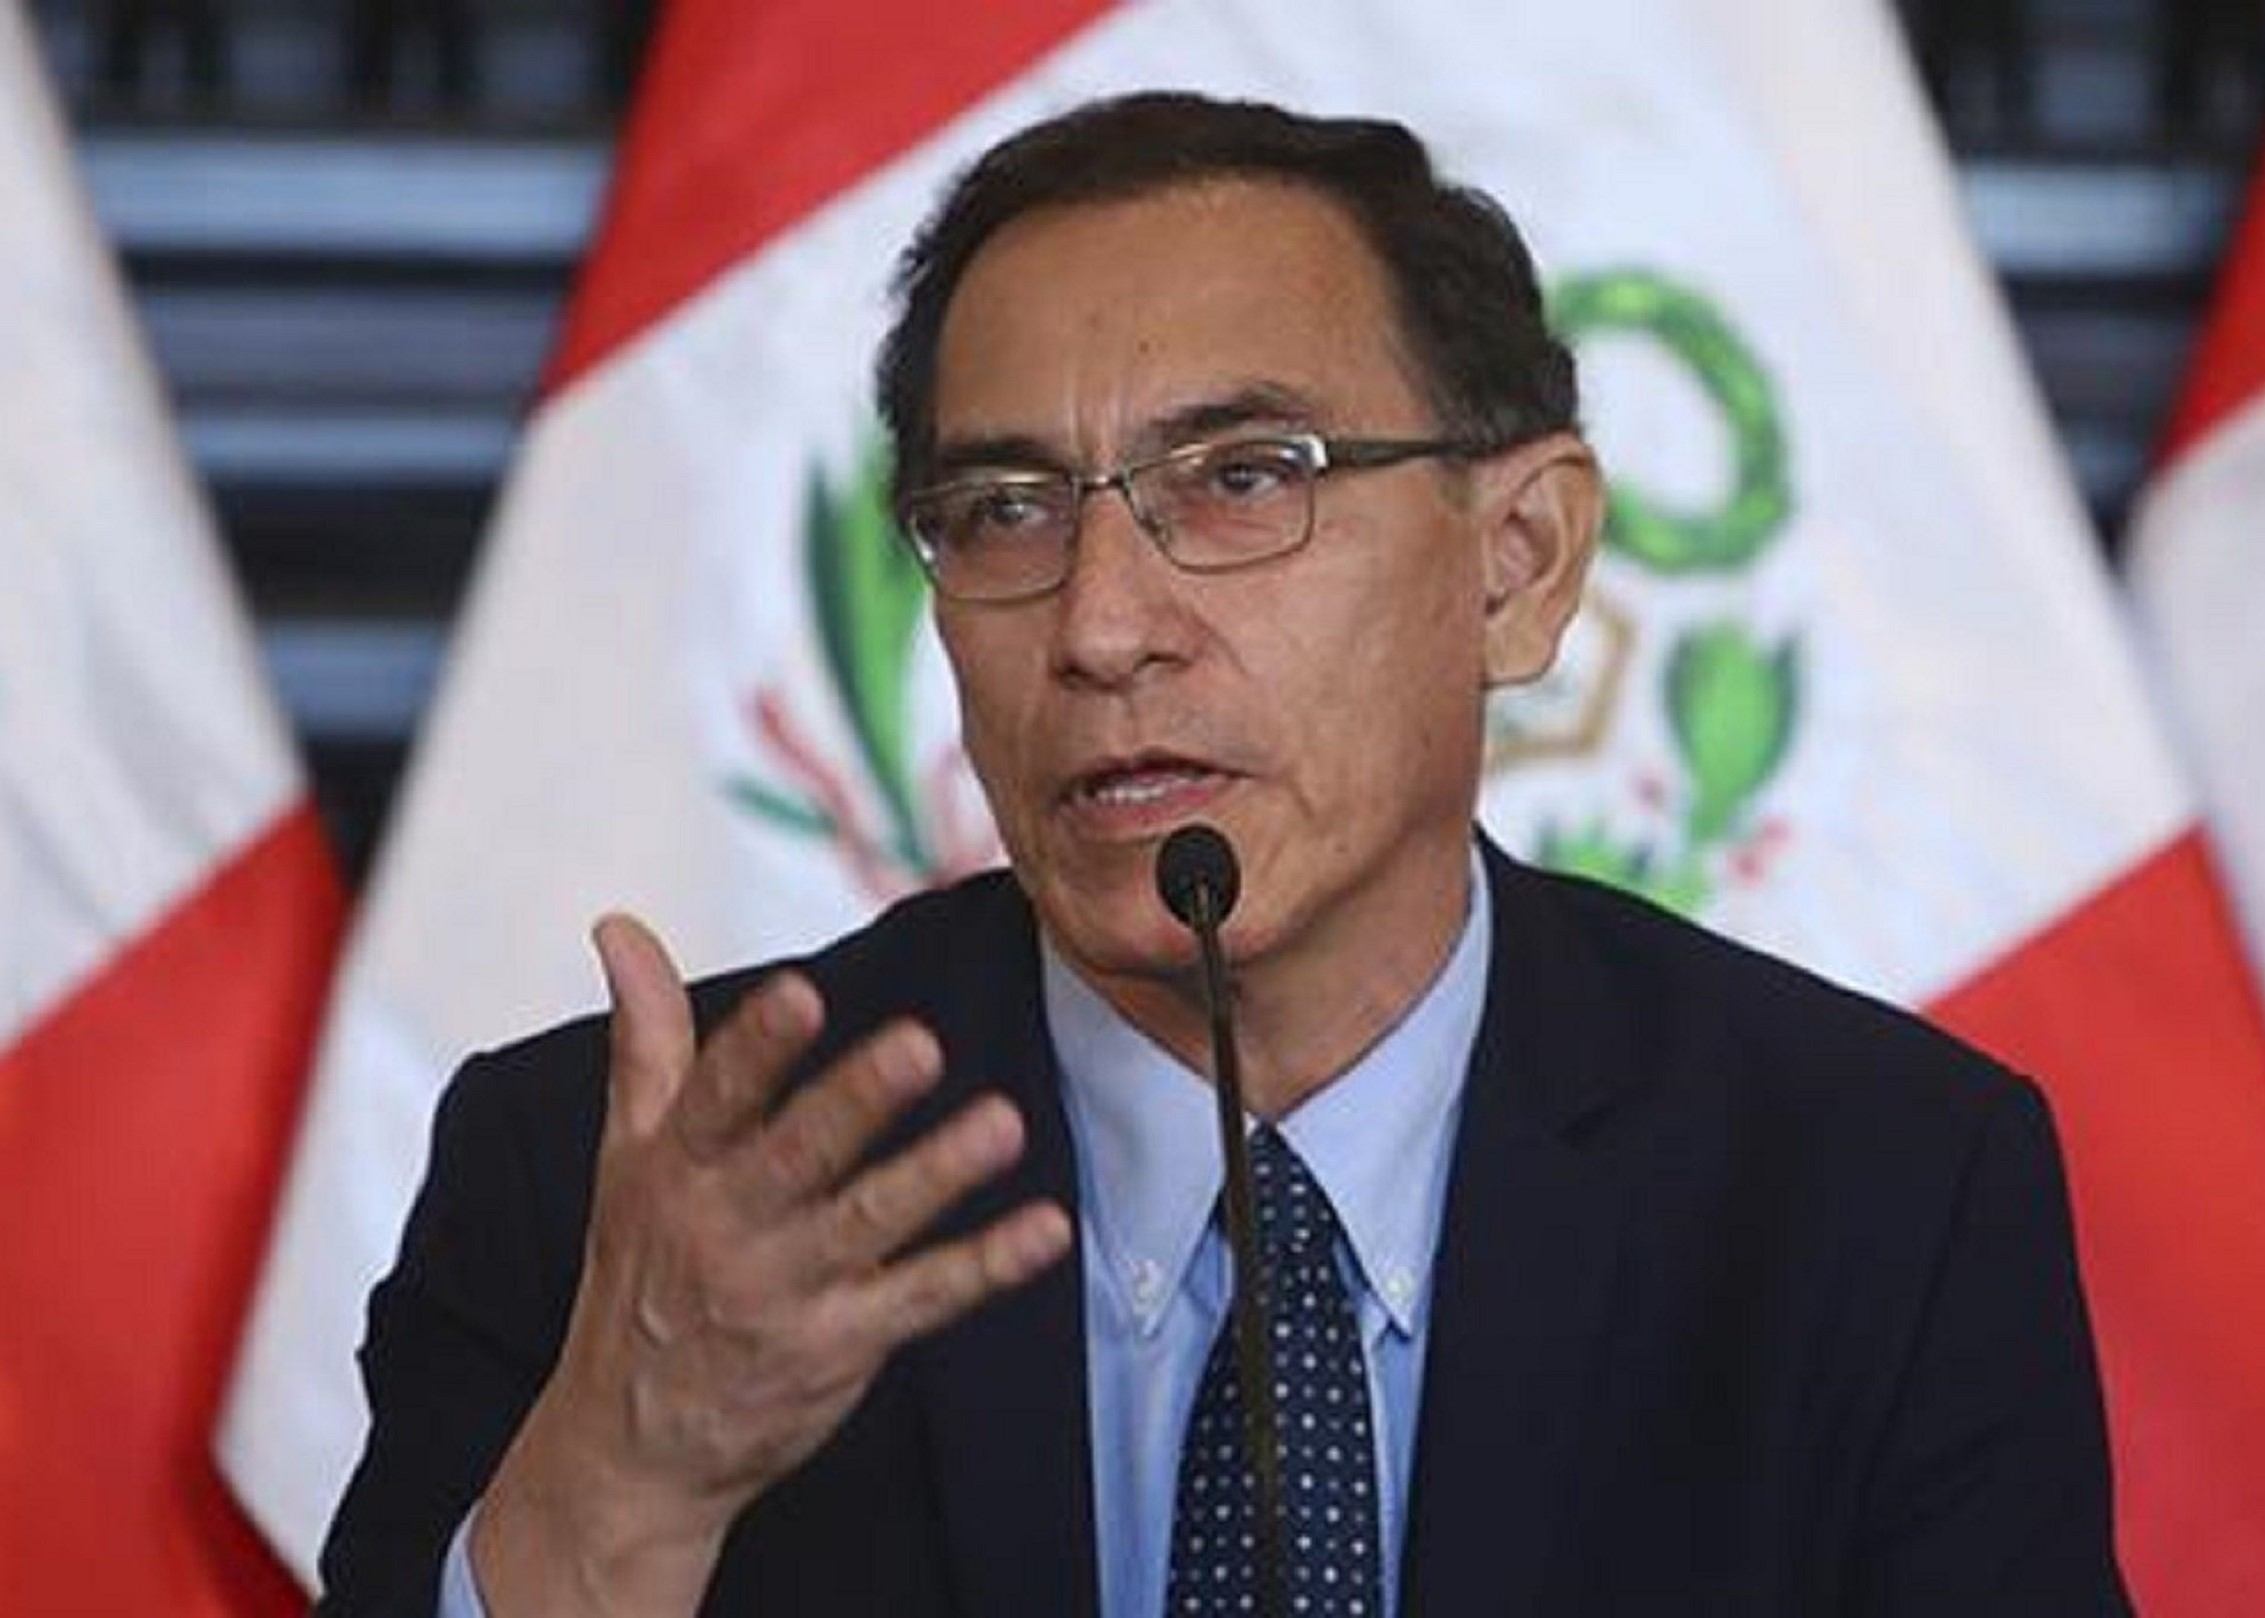 Where does Perú go from here: The Fujimori Blessing to Martín Vizcarra's Presidency